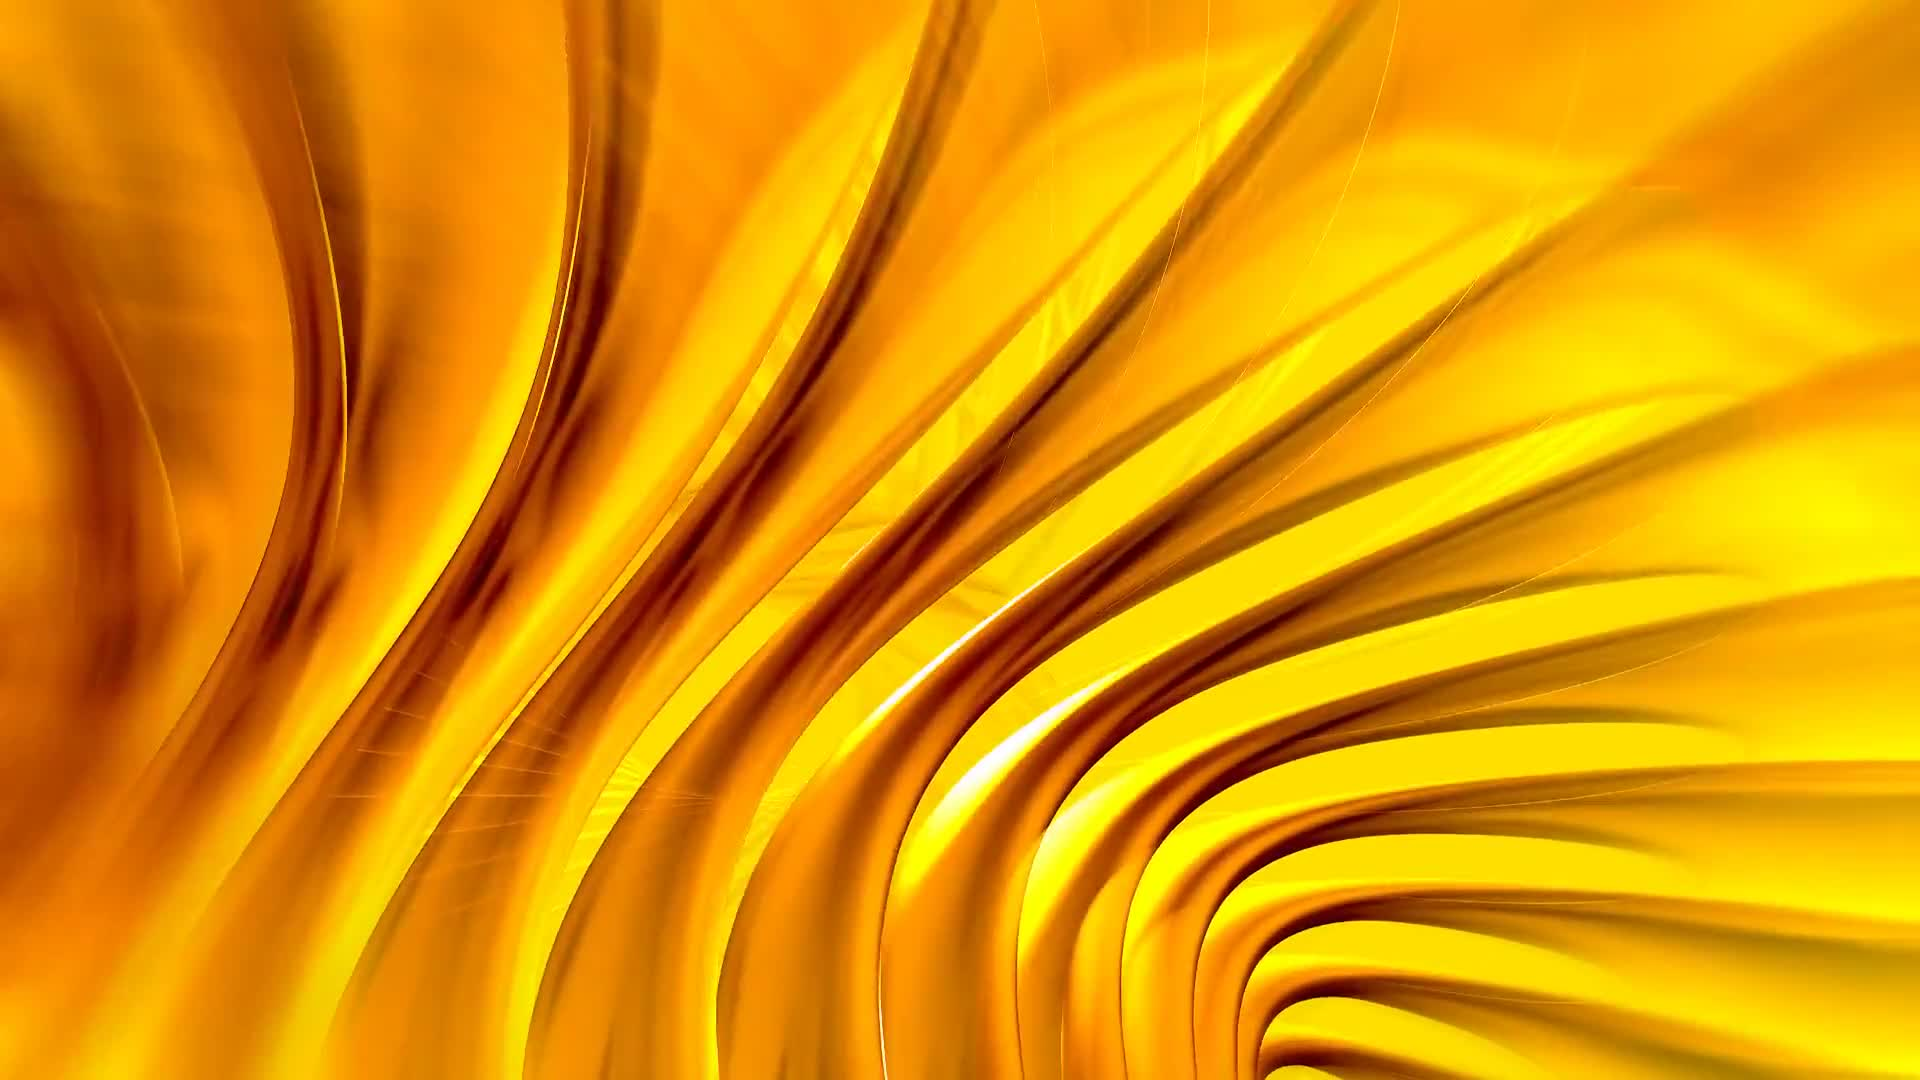 Spinning yellow abstract background loop